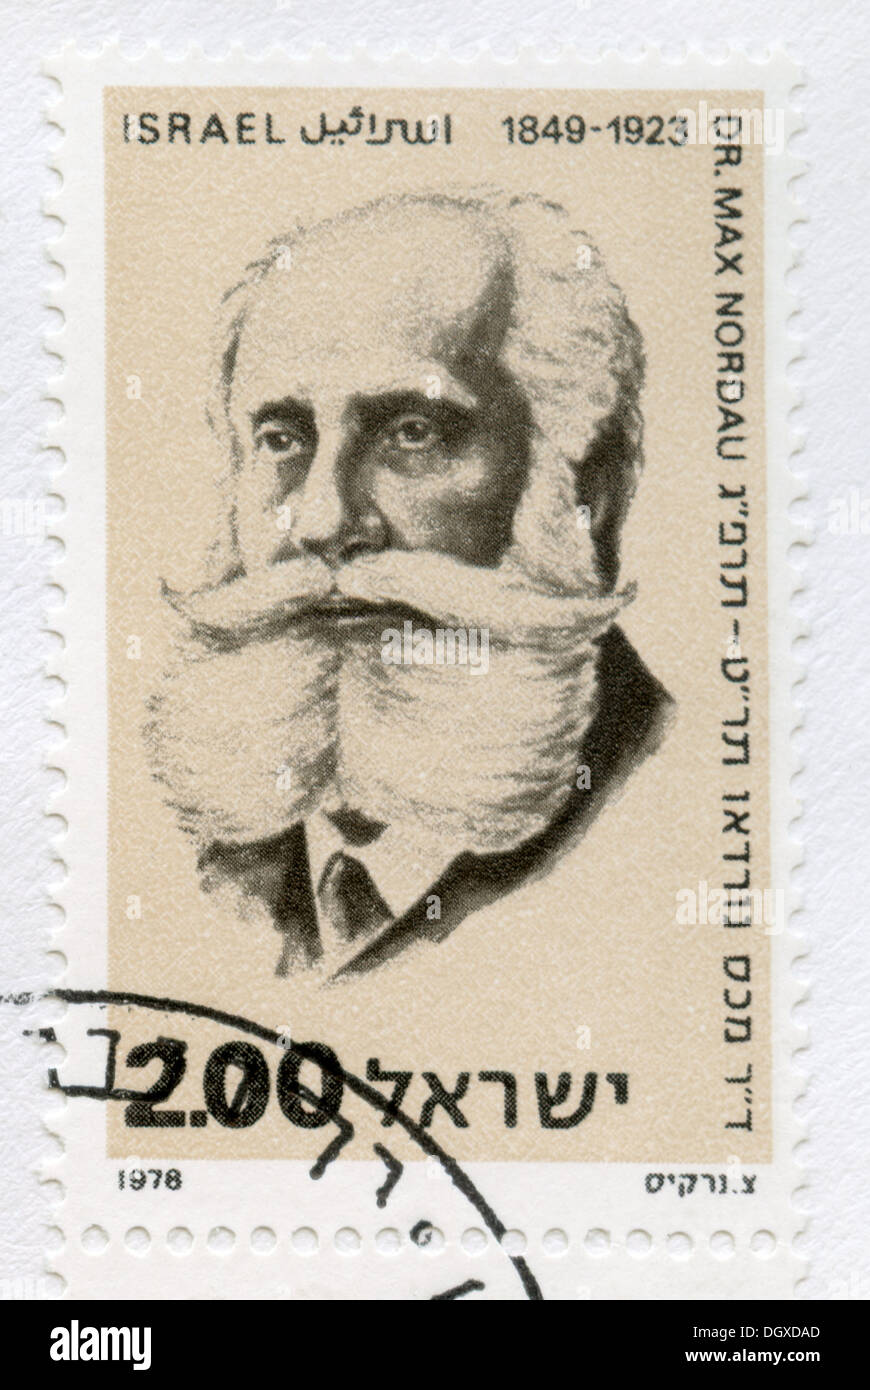 Israel postage stamp depicting Max Simon Nordau, a Zionist leader, physician, author, and social critic - Stock Image